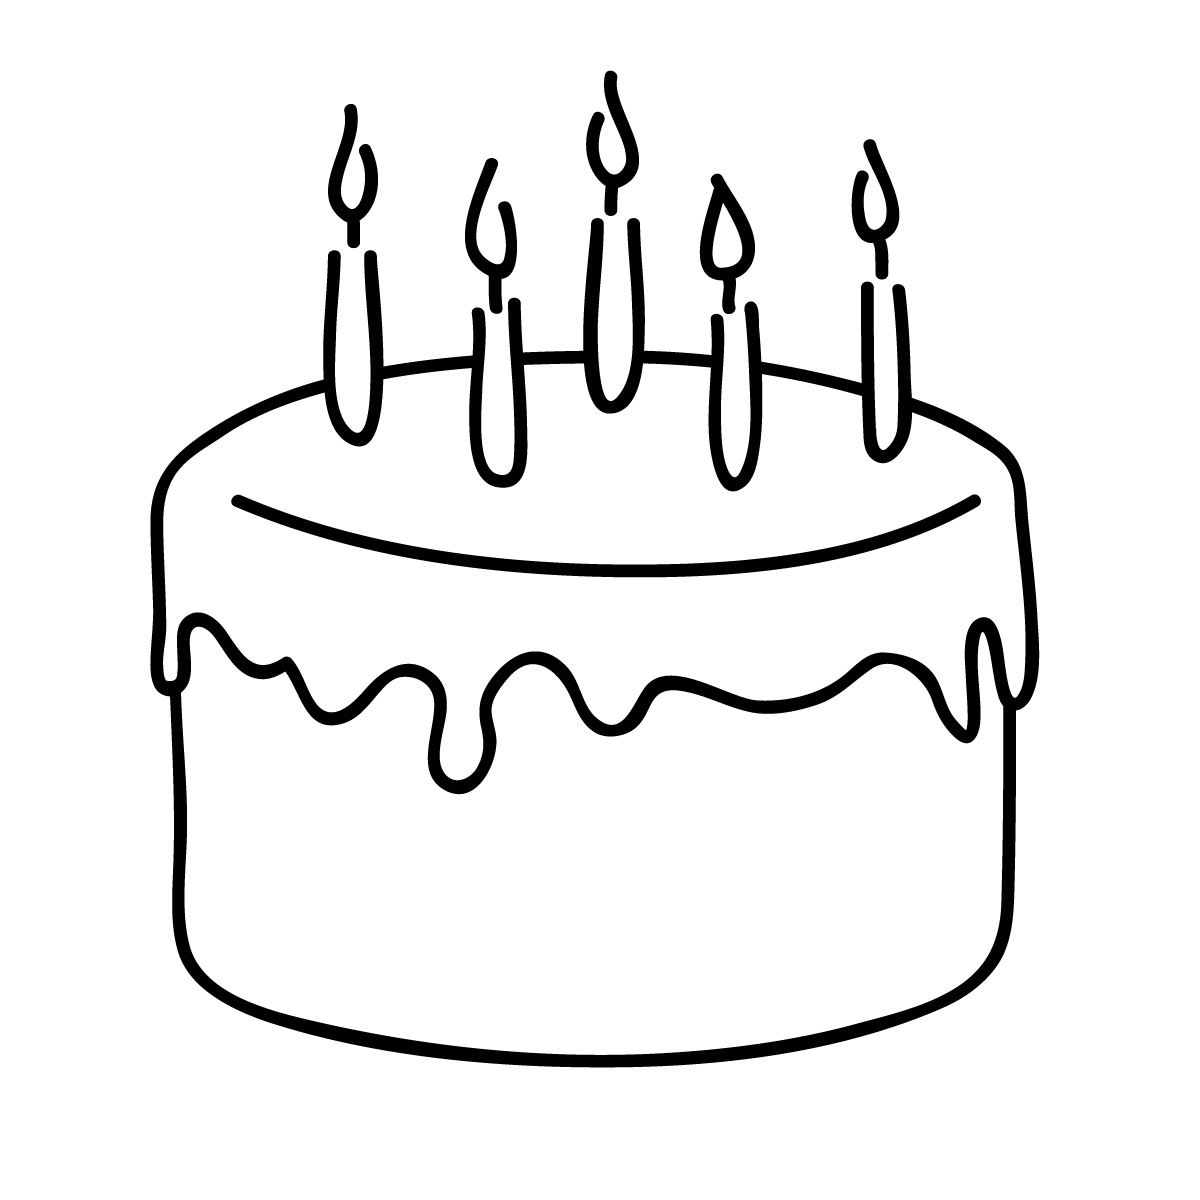 Tactueux image pertaining to birthday cake template printable